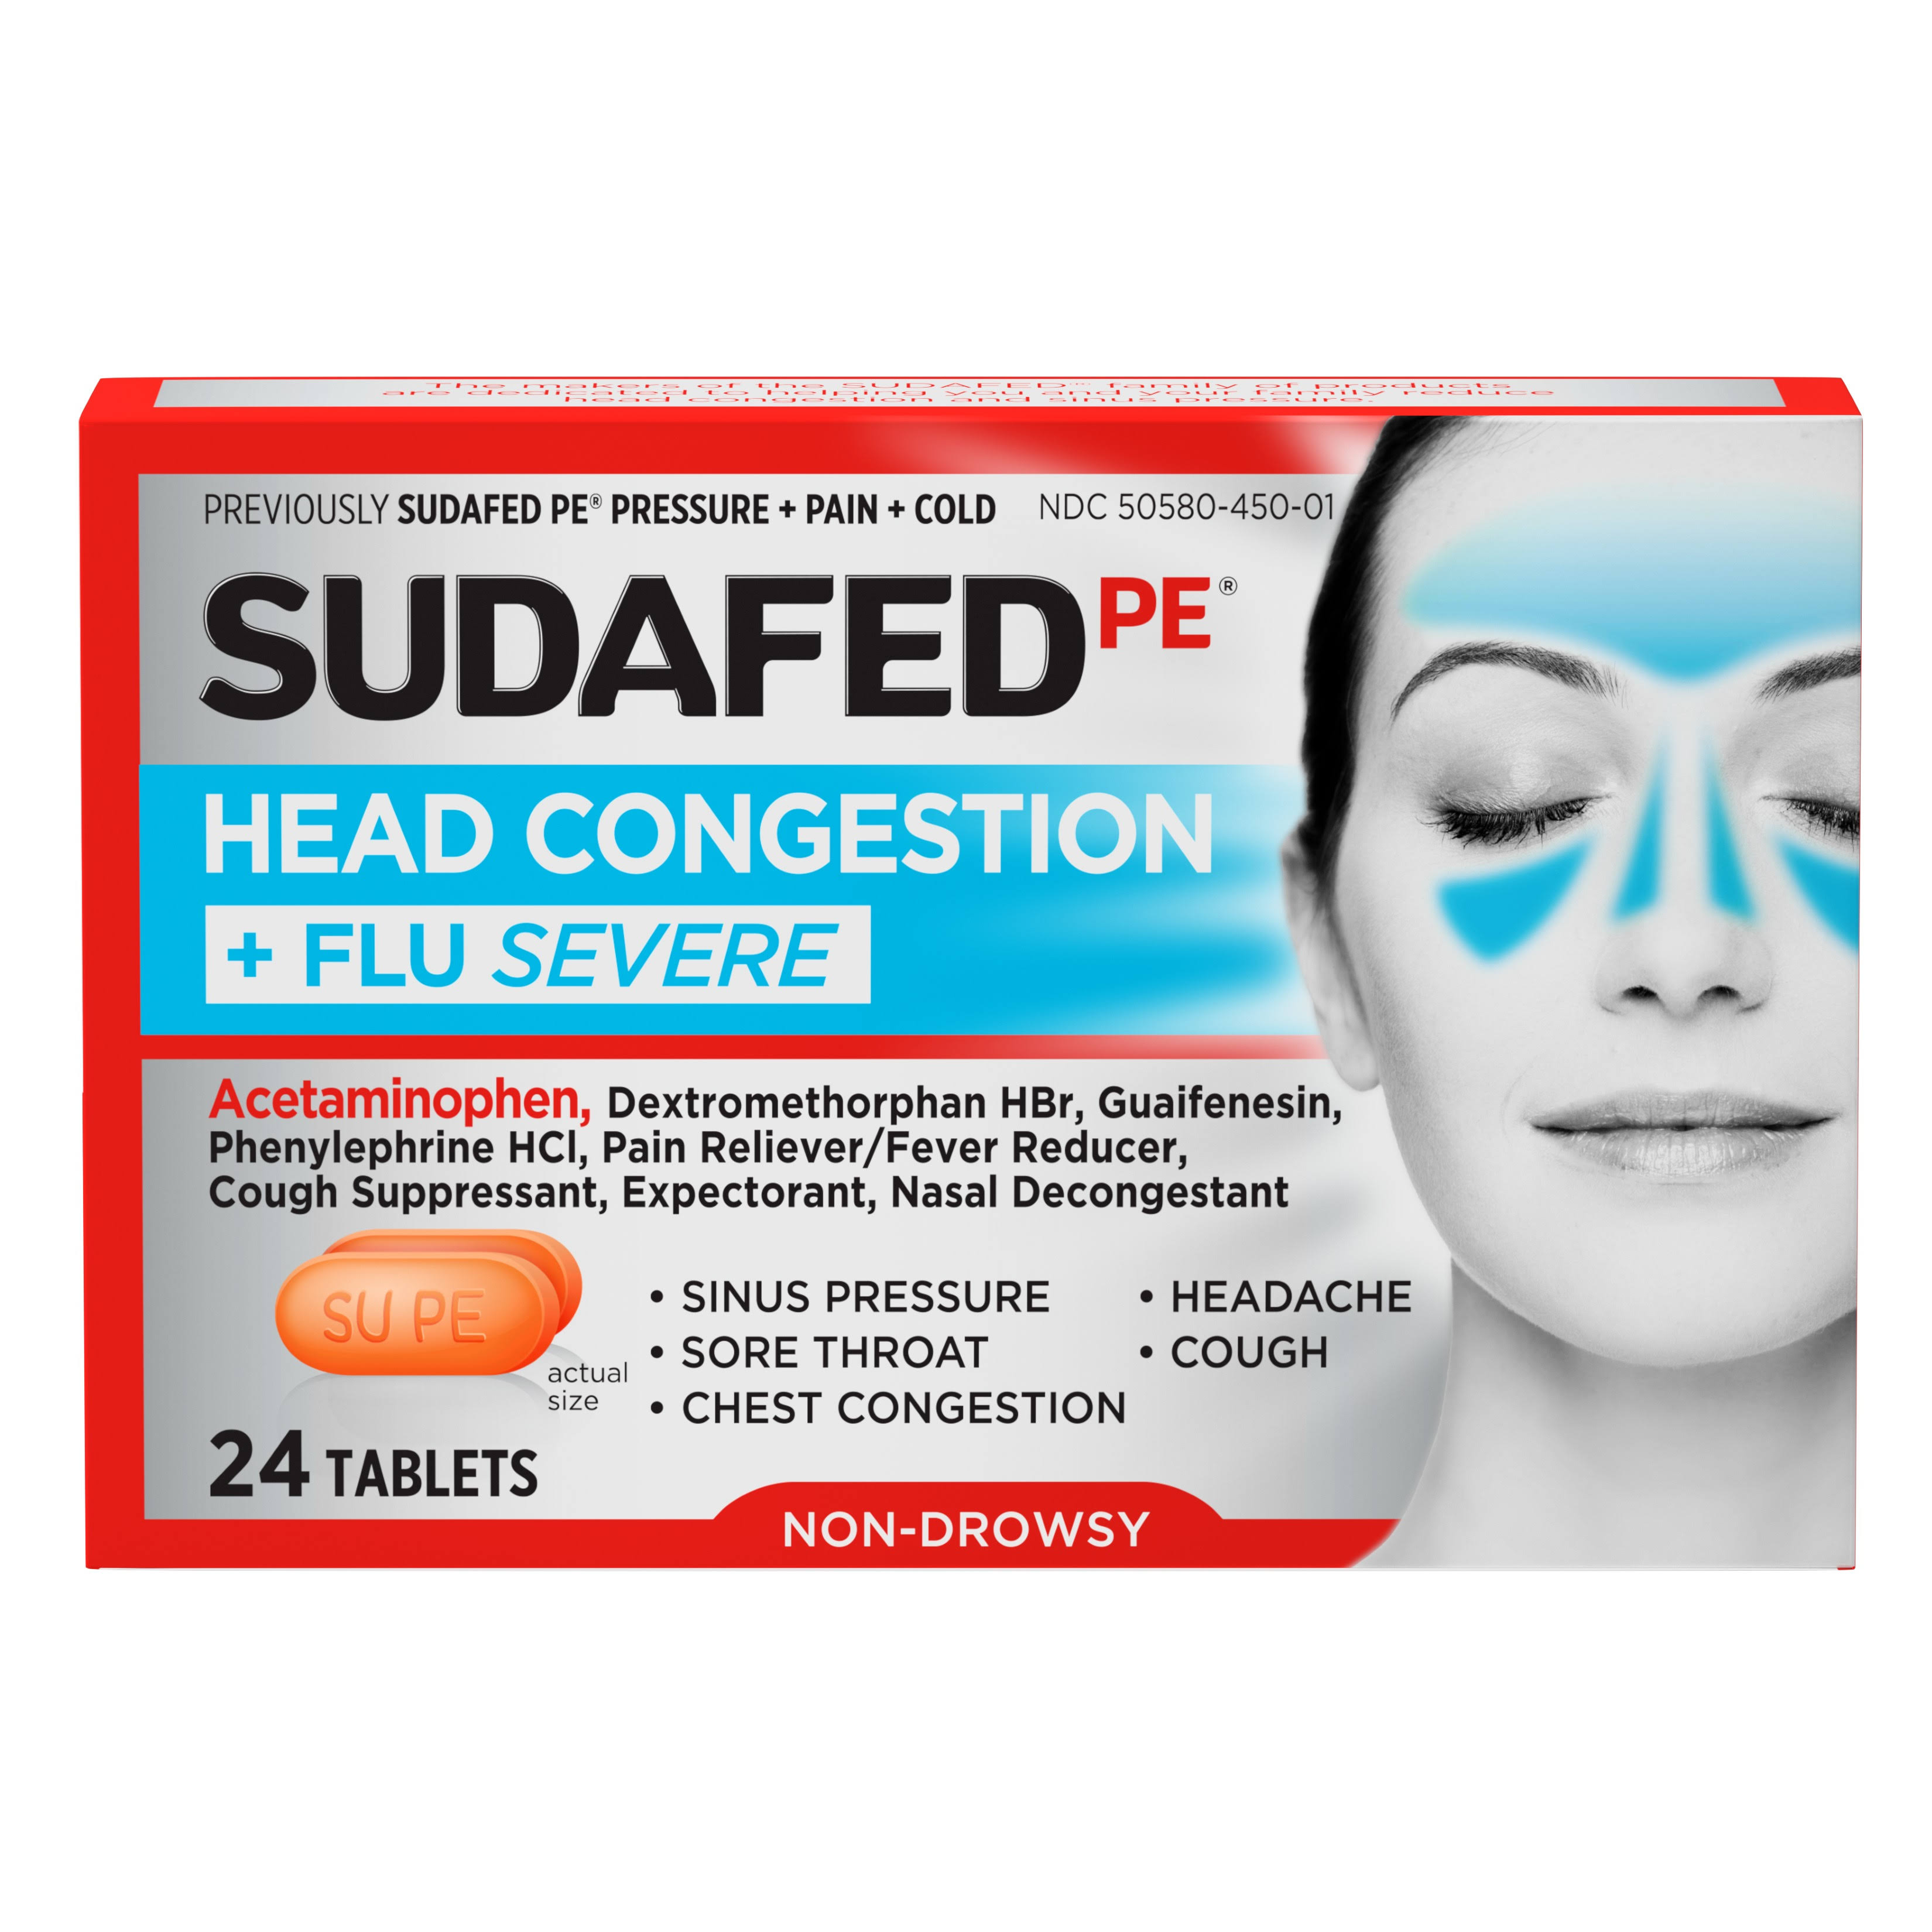 Sudafed PE Head Congestion + Flu Severe Tablets for Adults, 24 ct